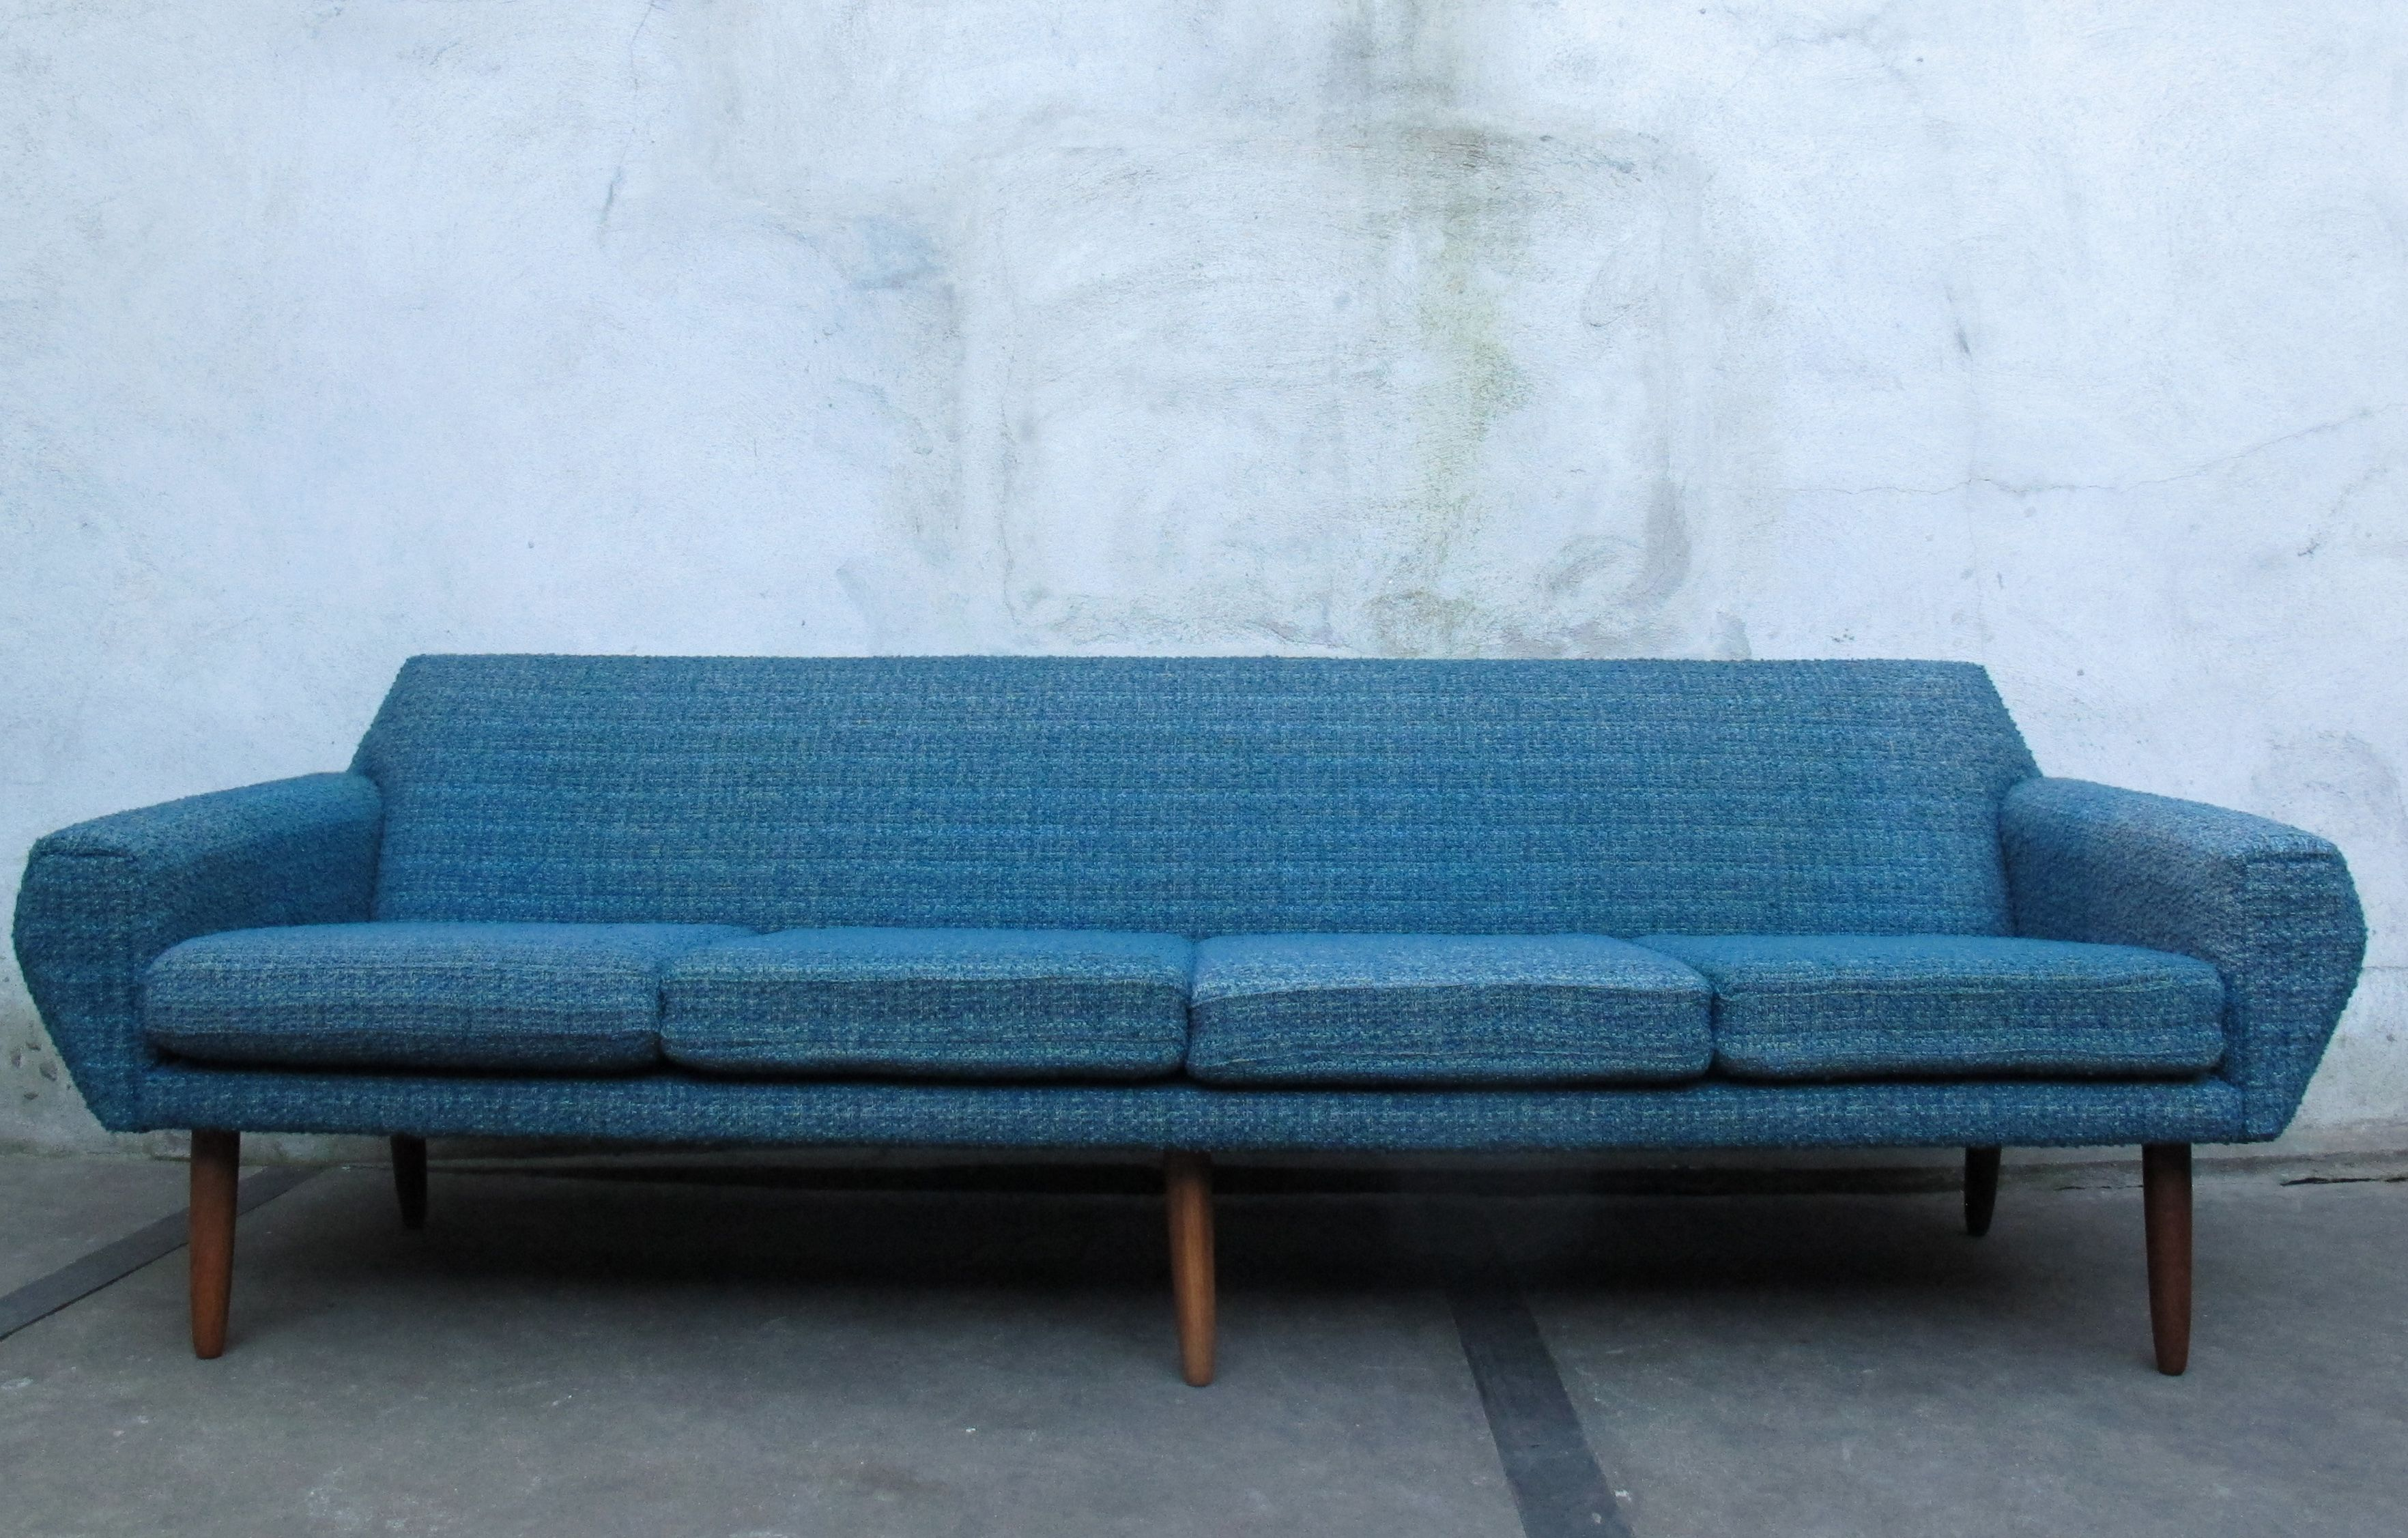 DANISH MODERN TEAK SOFA BY AAGE CHRISTIANSEN FOR ERHARD U0026 ANDERSEN (ERAN):  Designed In The Early To Mid 1960s And Very Similar To ERANu0027s 1963 ADMIRAL  Model.